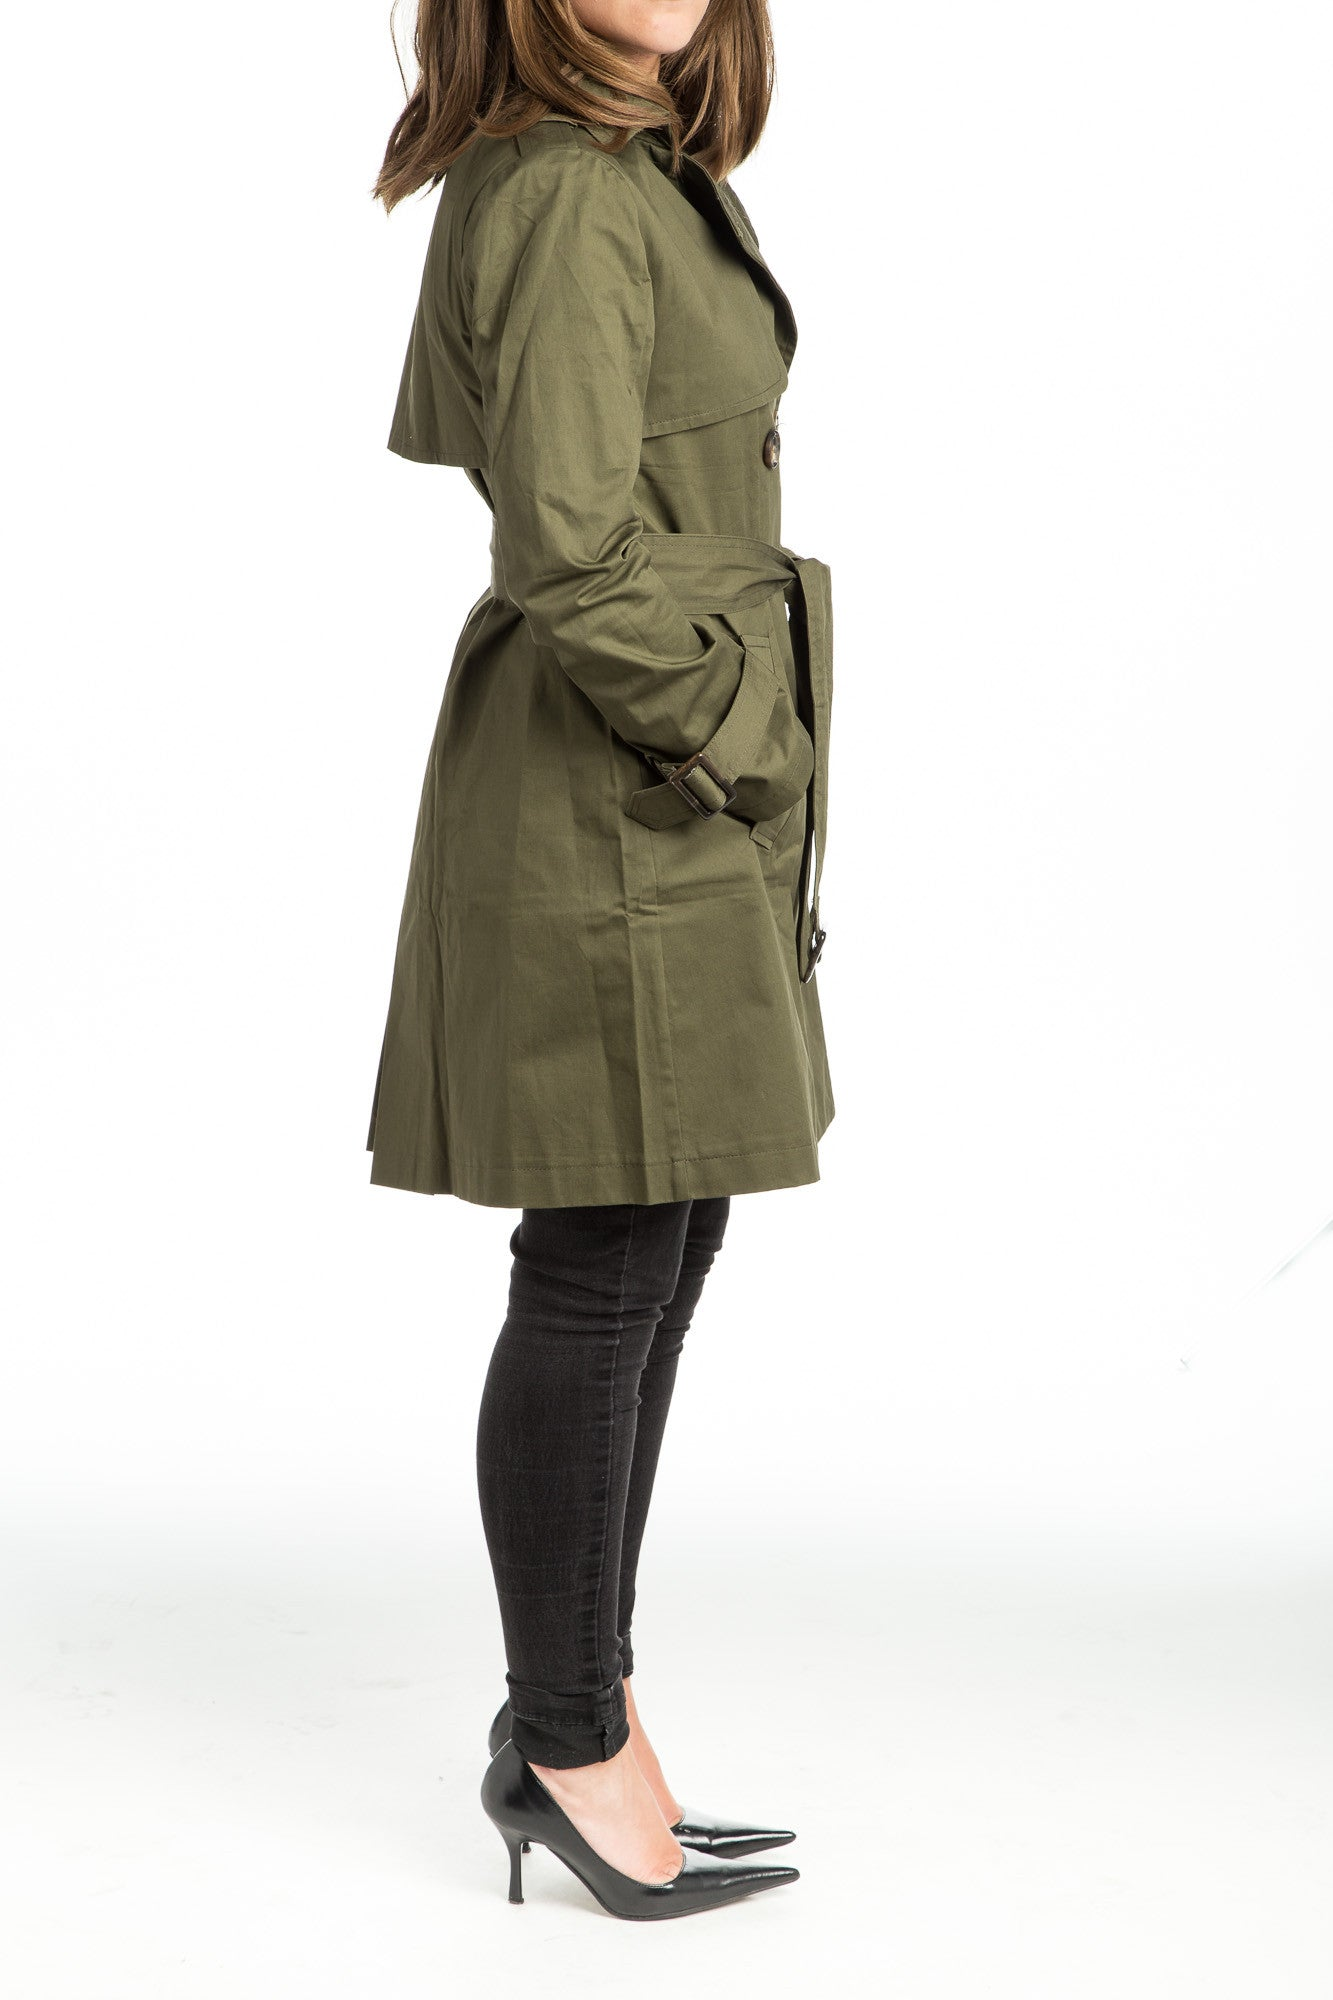 SHERA Trench Coat - 2 colors available - Mademoiselle Veste - 6